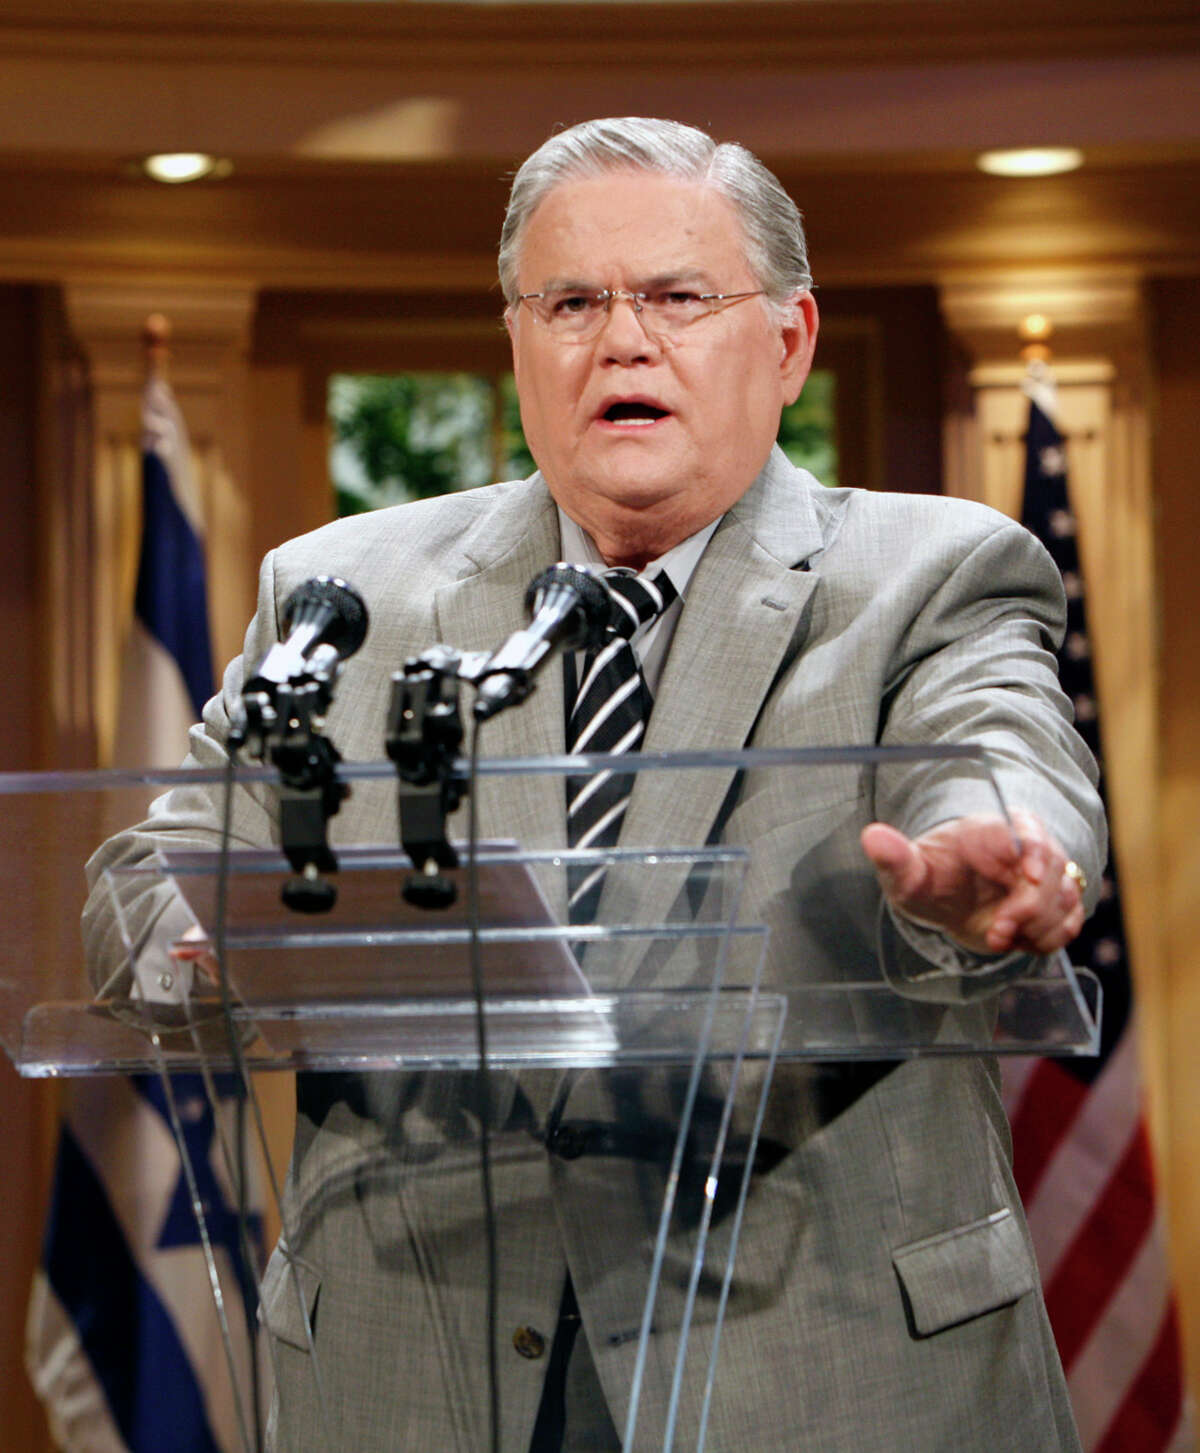 Pastor John Hagee told his congregation at Cornerstone Church Sunday that